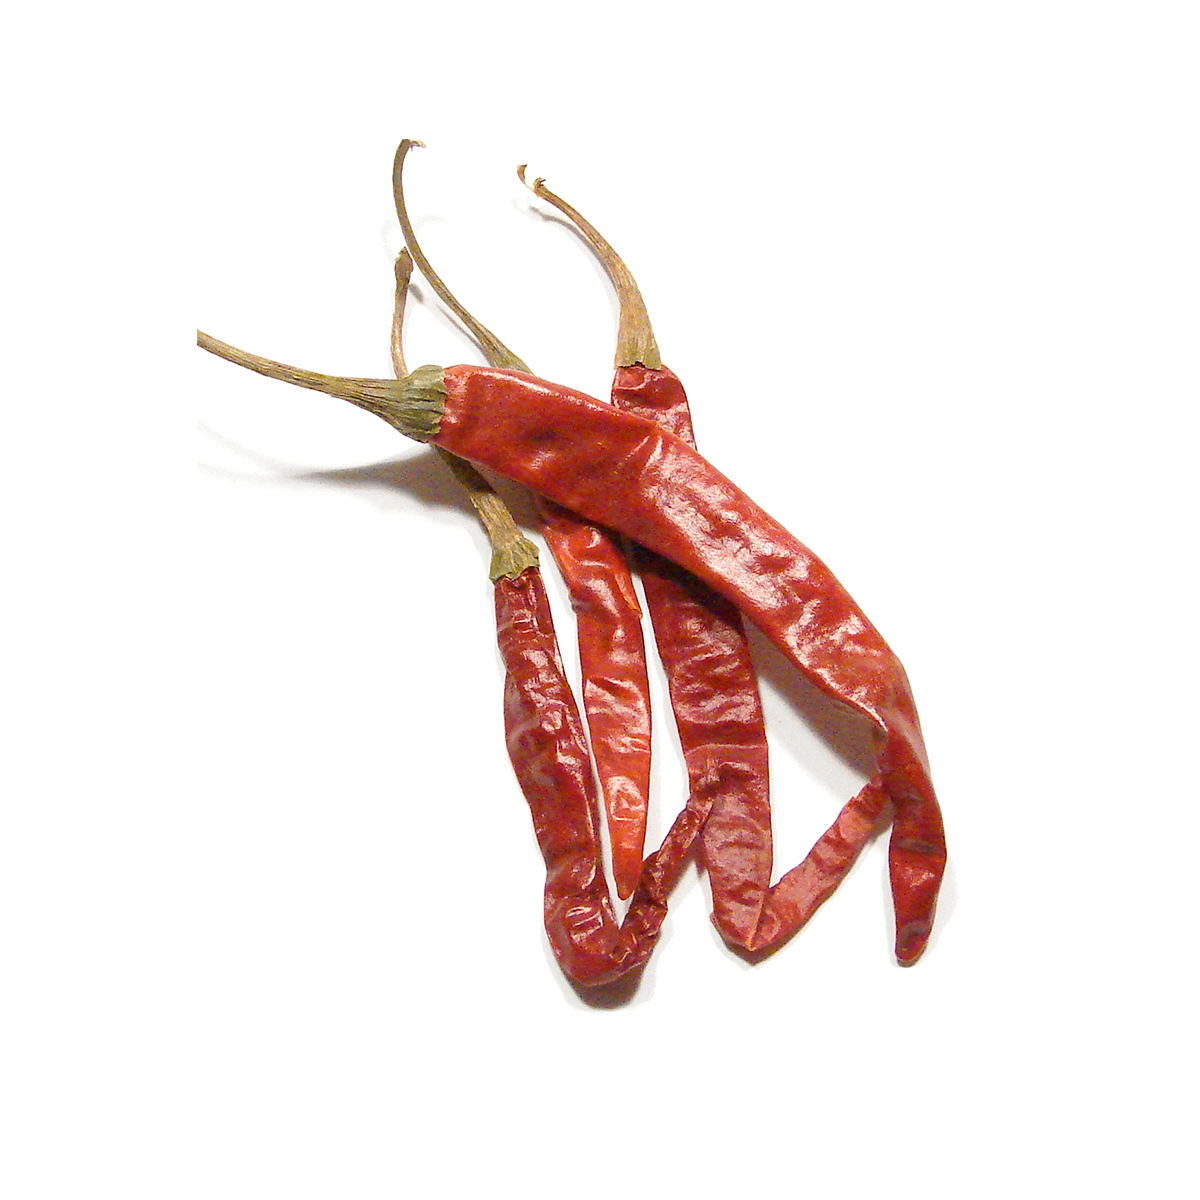 Arbol Chile Pepper Dried Mexican Food Products